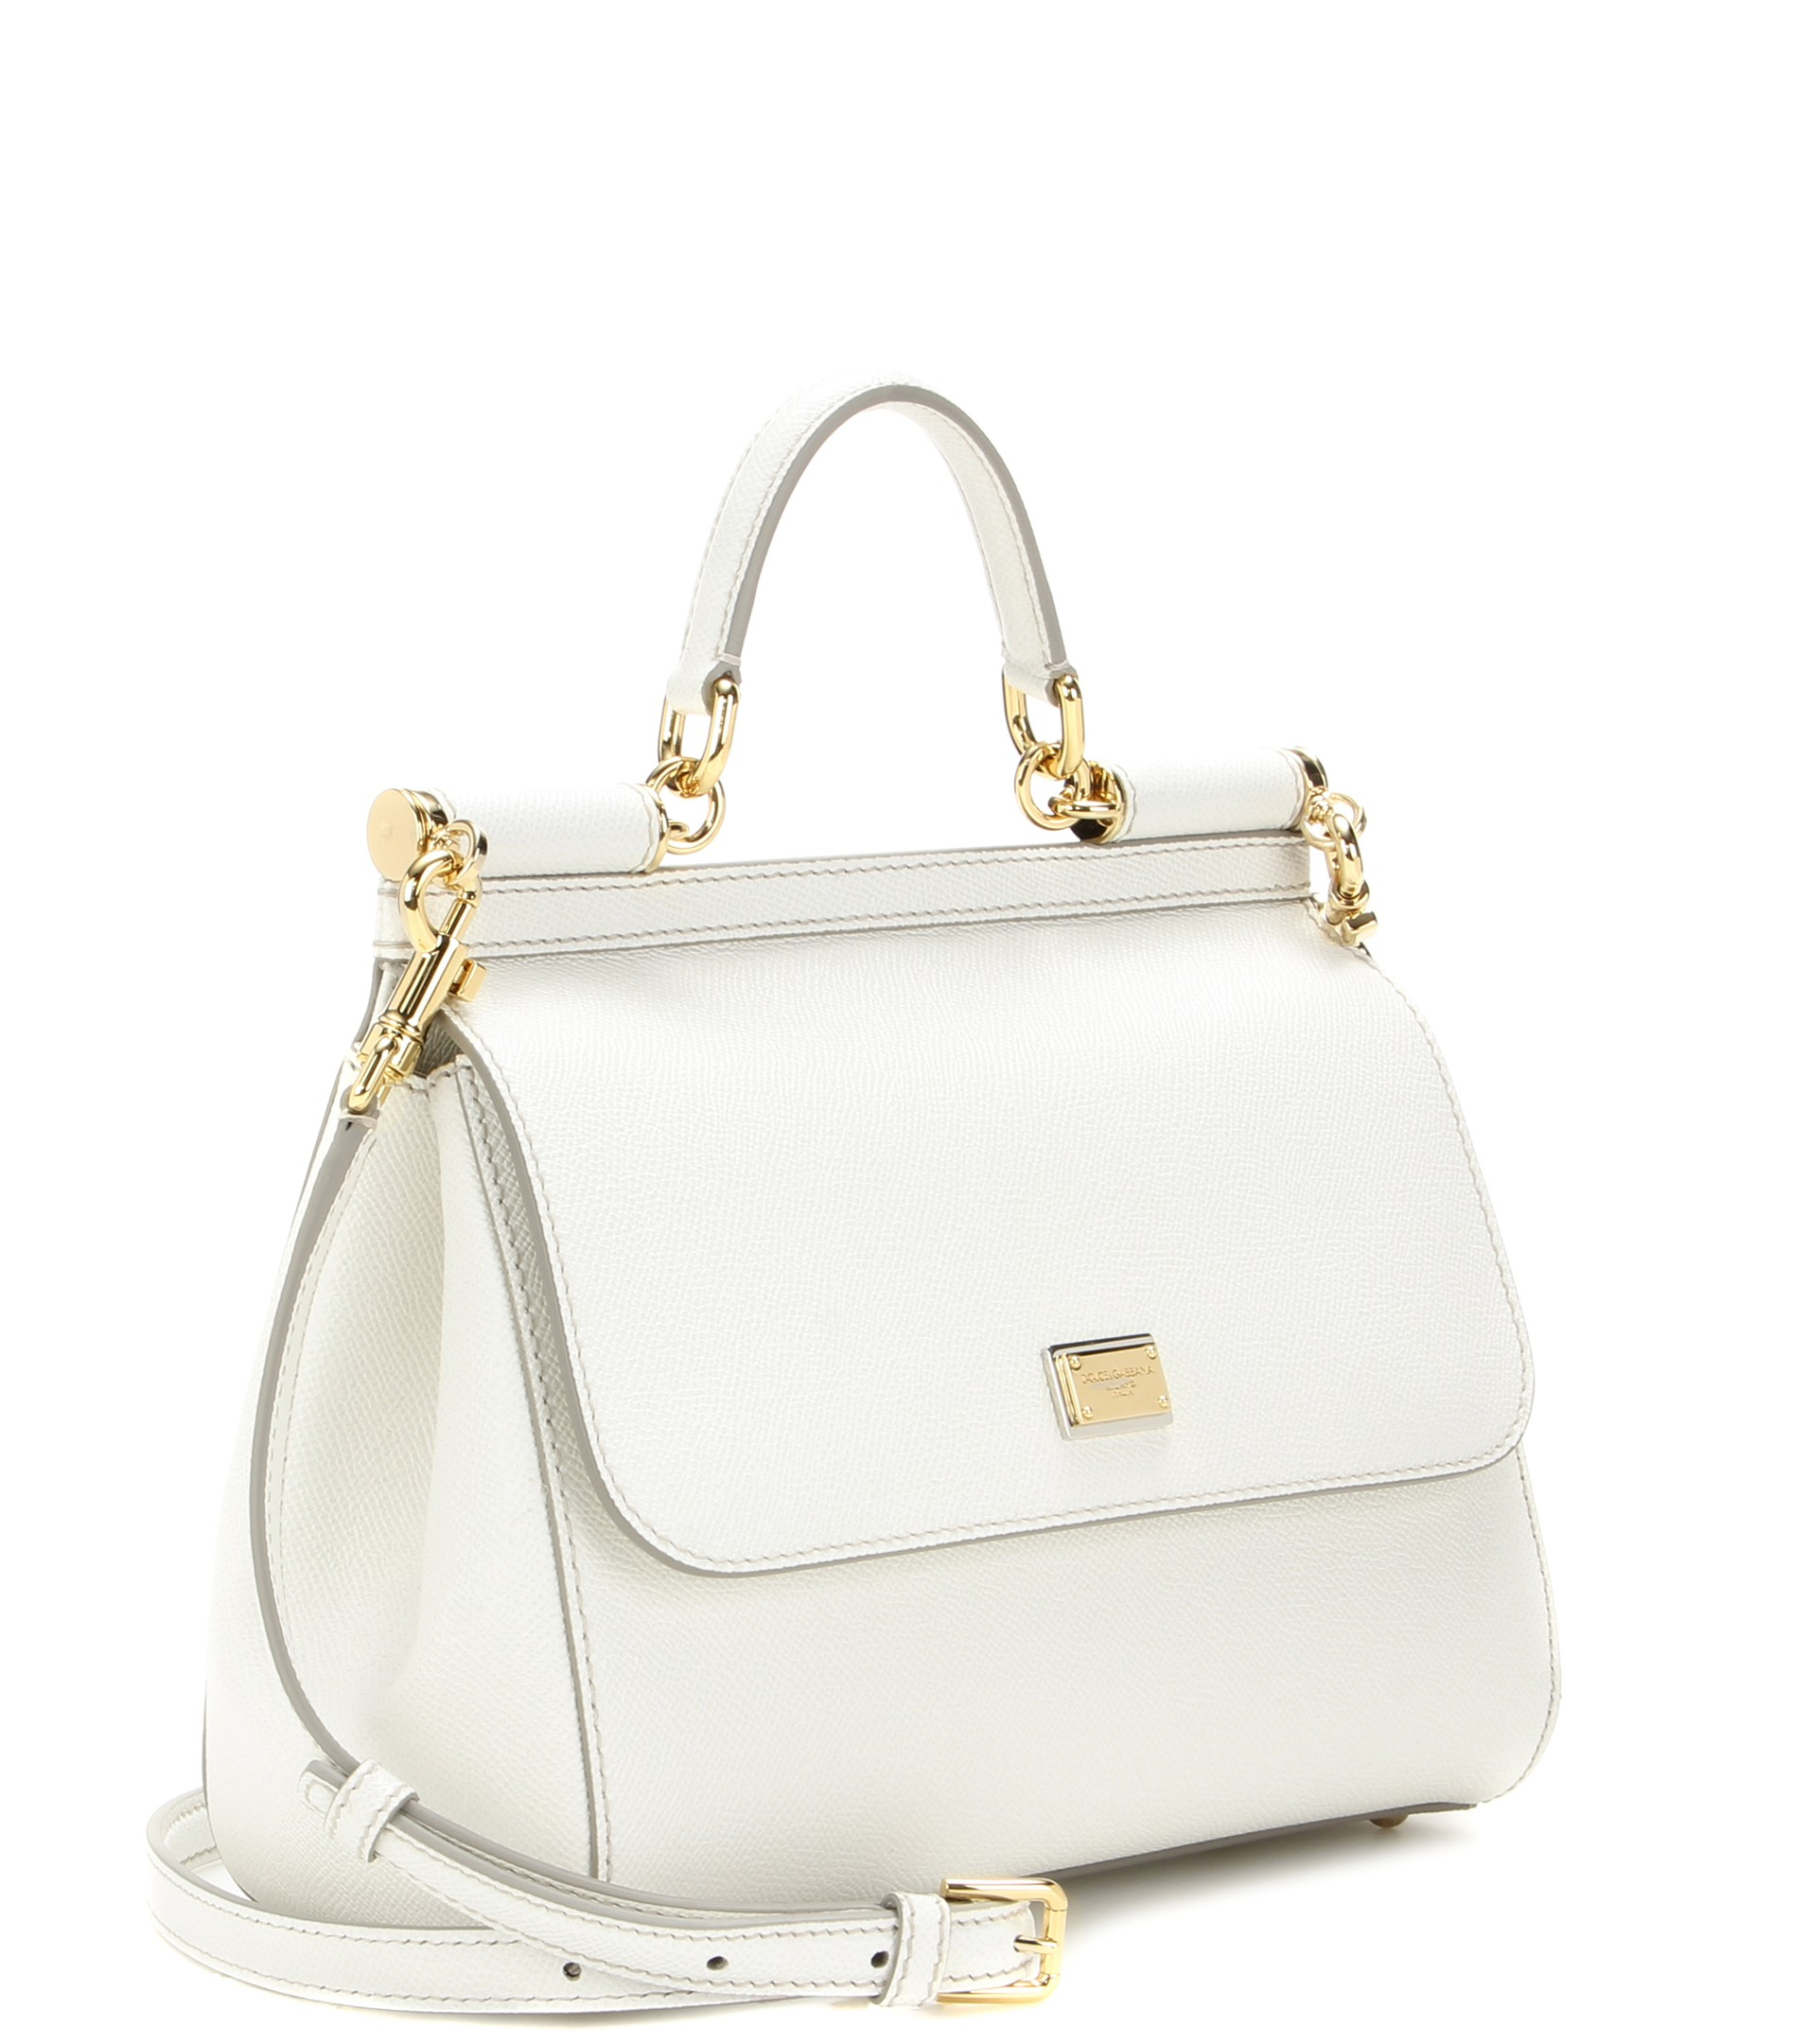 89799c568e Lyst - Dolce   Gabbana Miss Sicily Medium Leather Shoulder Bag in White